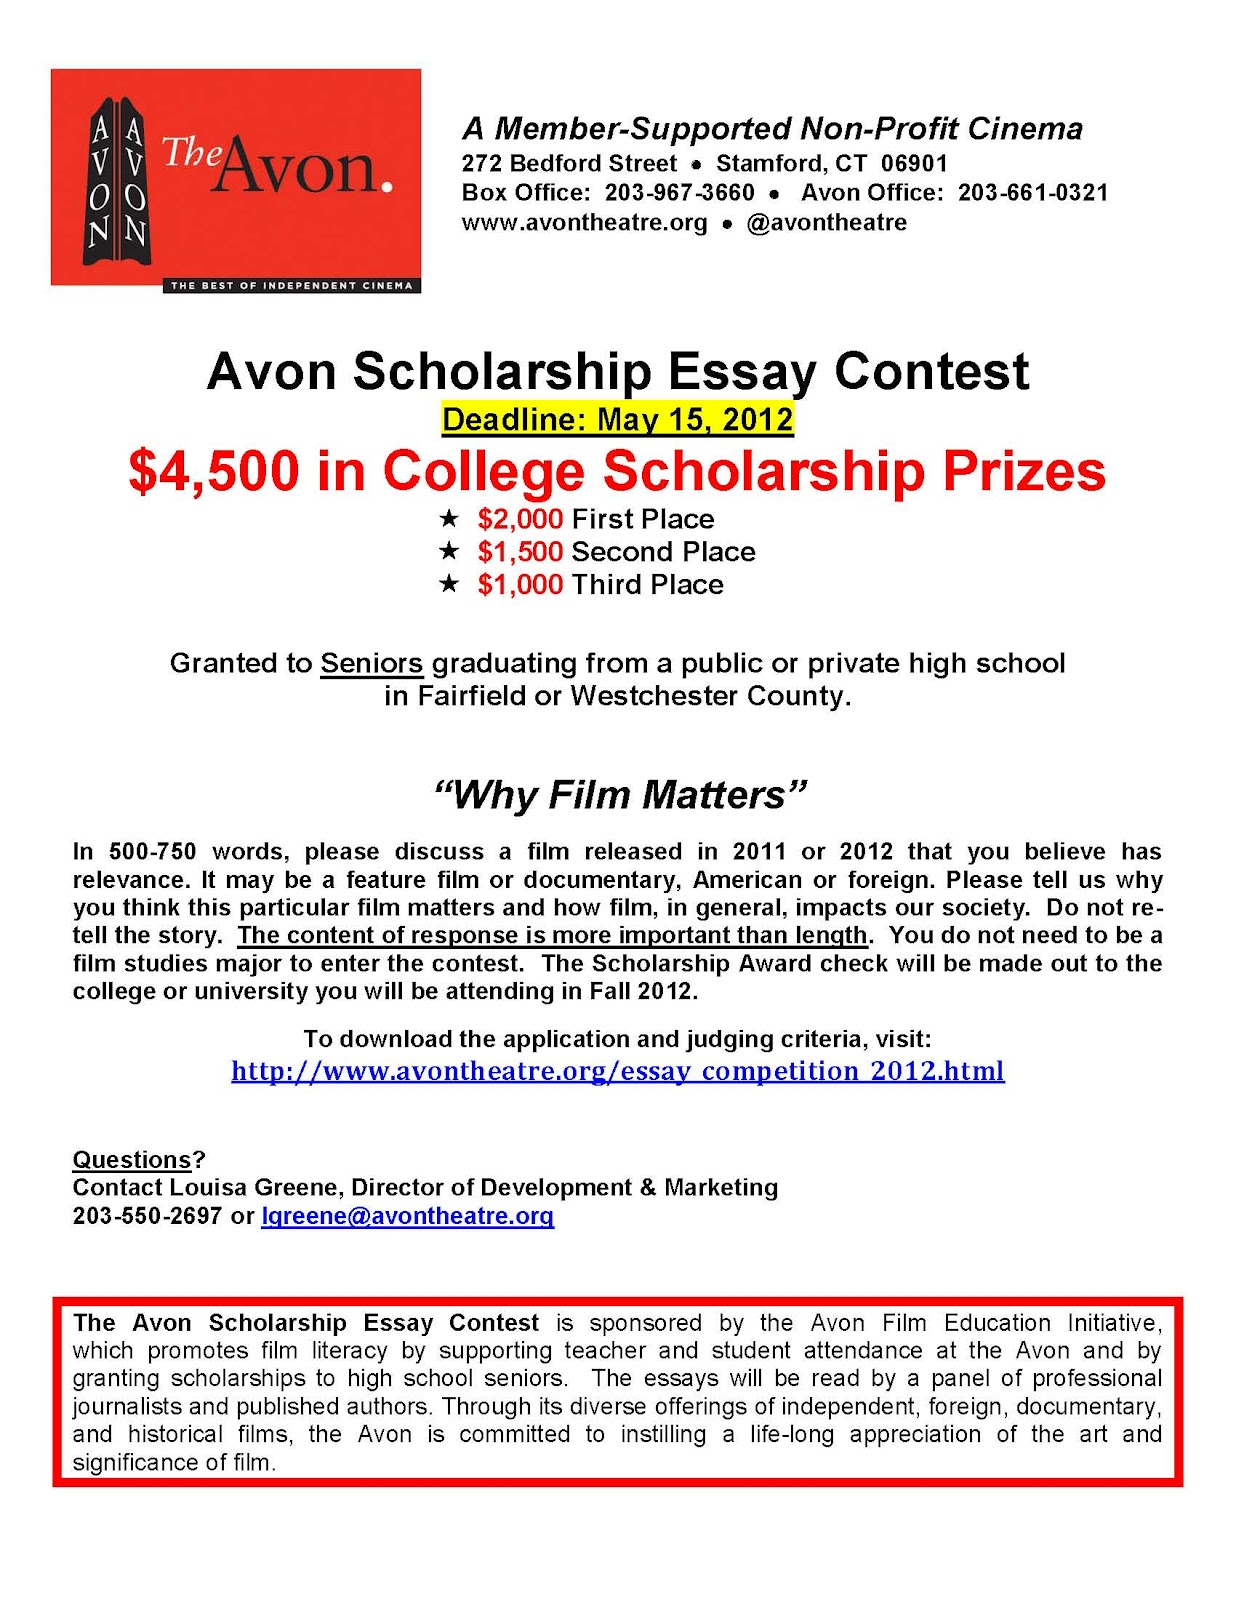 essay writing scholarships for high school seniors essay writing scholarships for high school seniors